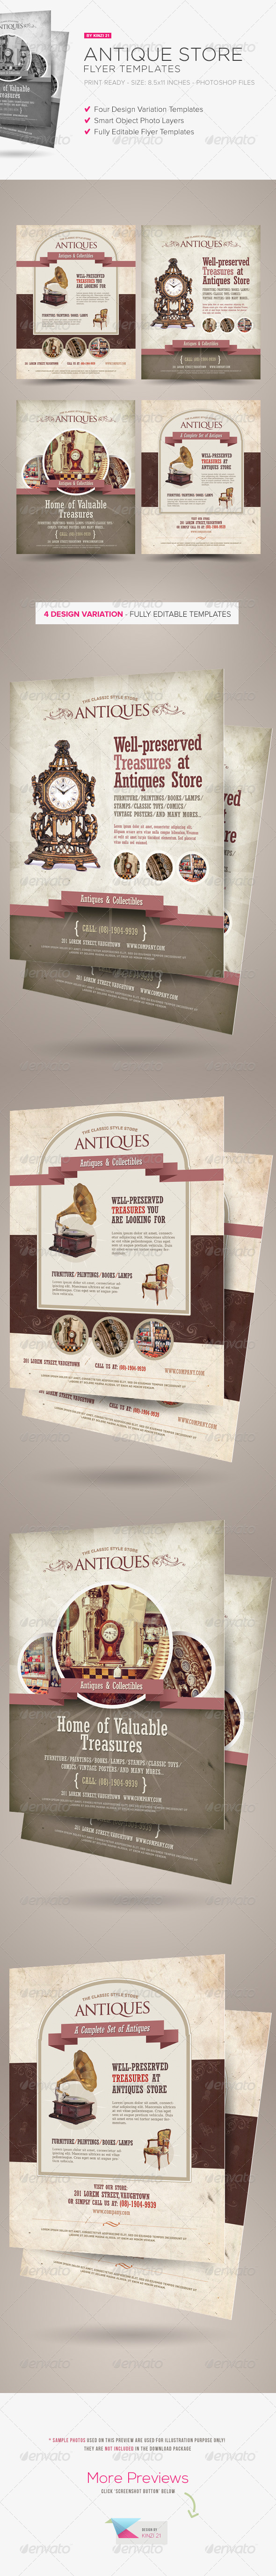 Antique Store Flyer Templates - Corporate Flyers